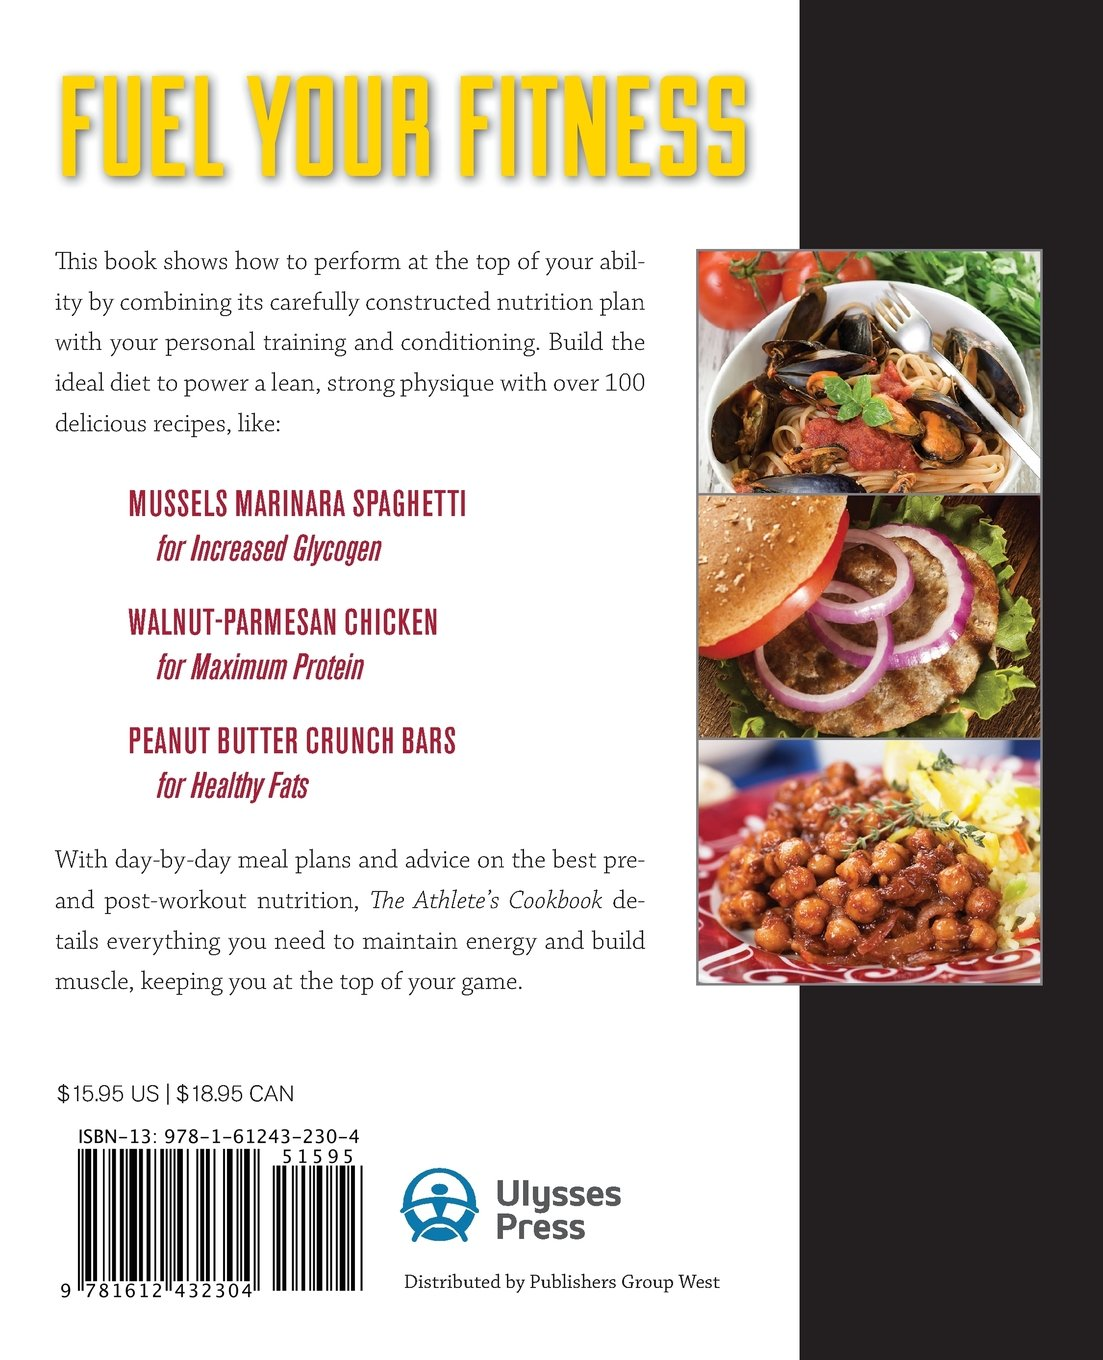 The athletes cookbook a nutritional program to fuel the body for the athletes cookbook a nutritional program to fuel the body for peak performance and rapid recovery brett stewart corey irwin 9781612432304 forumfinder Image collections